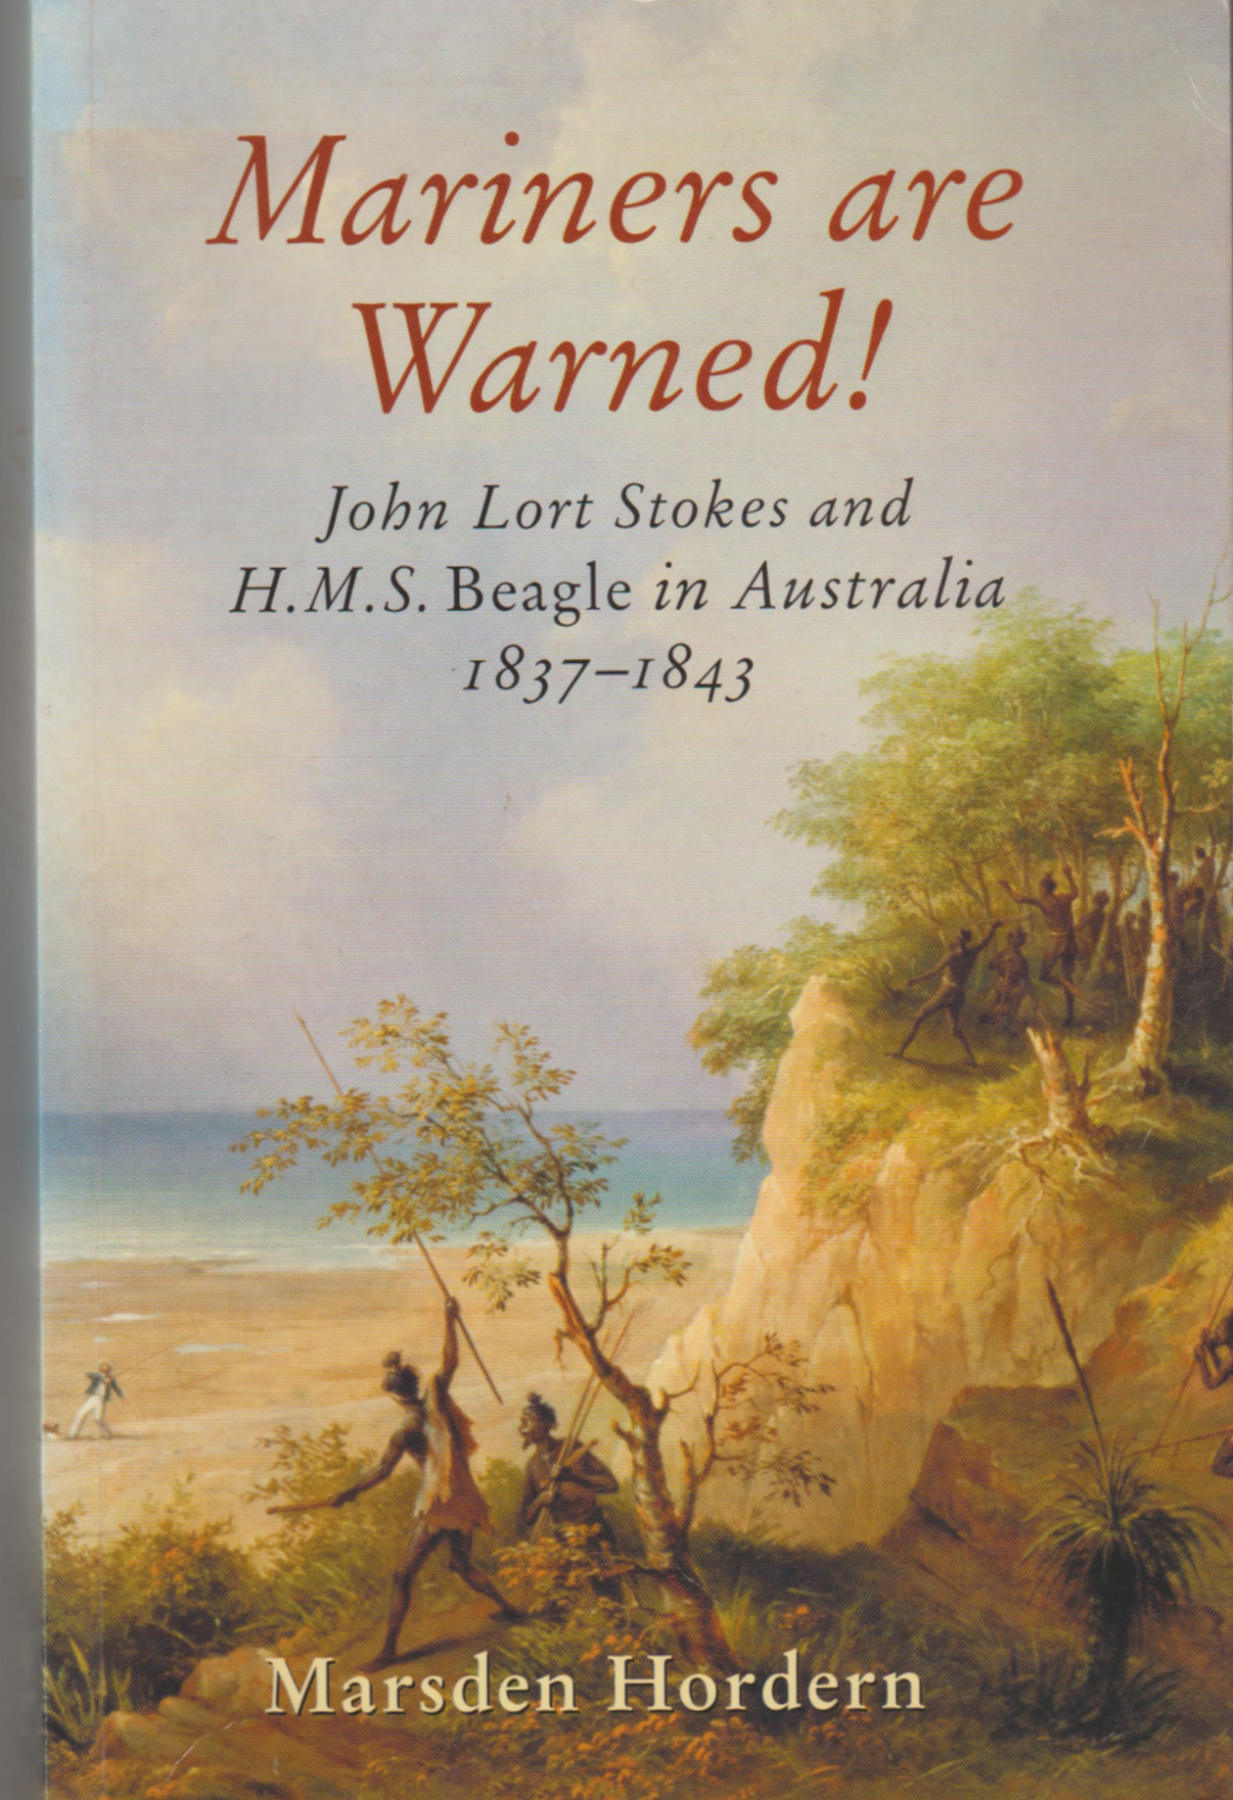 Image for MARINERS ARE WARNED!: John Lort Stokes and H. M. S. Beagle in Australia 1837-1843